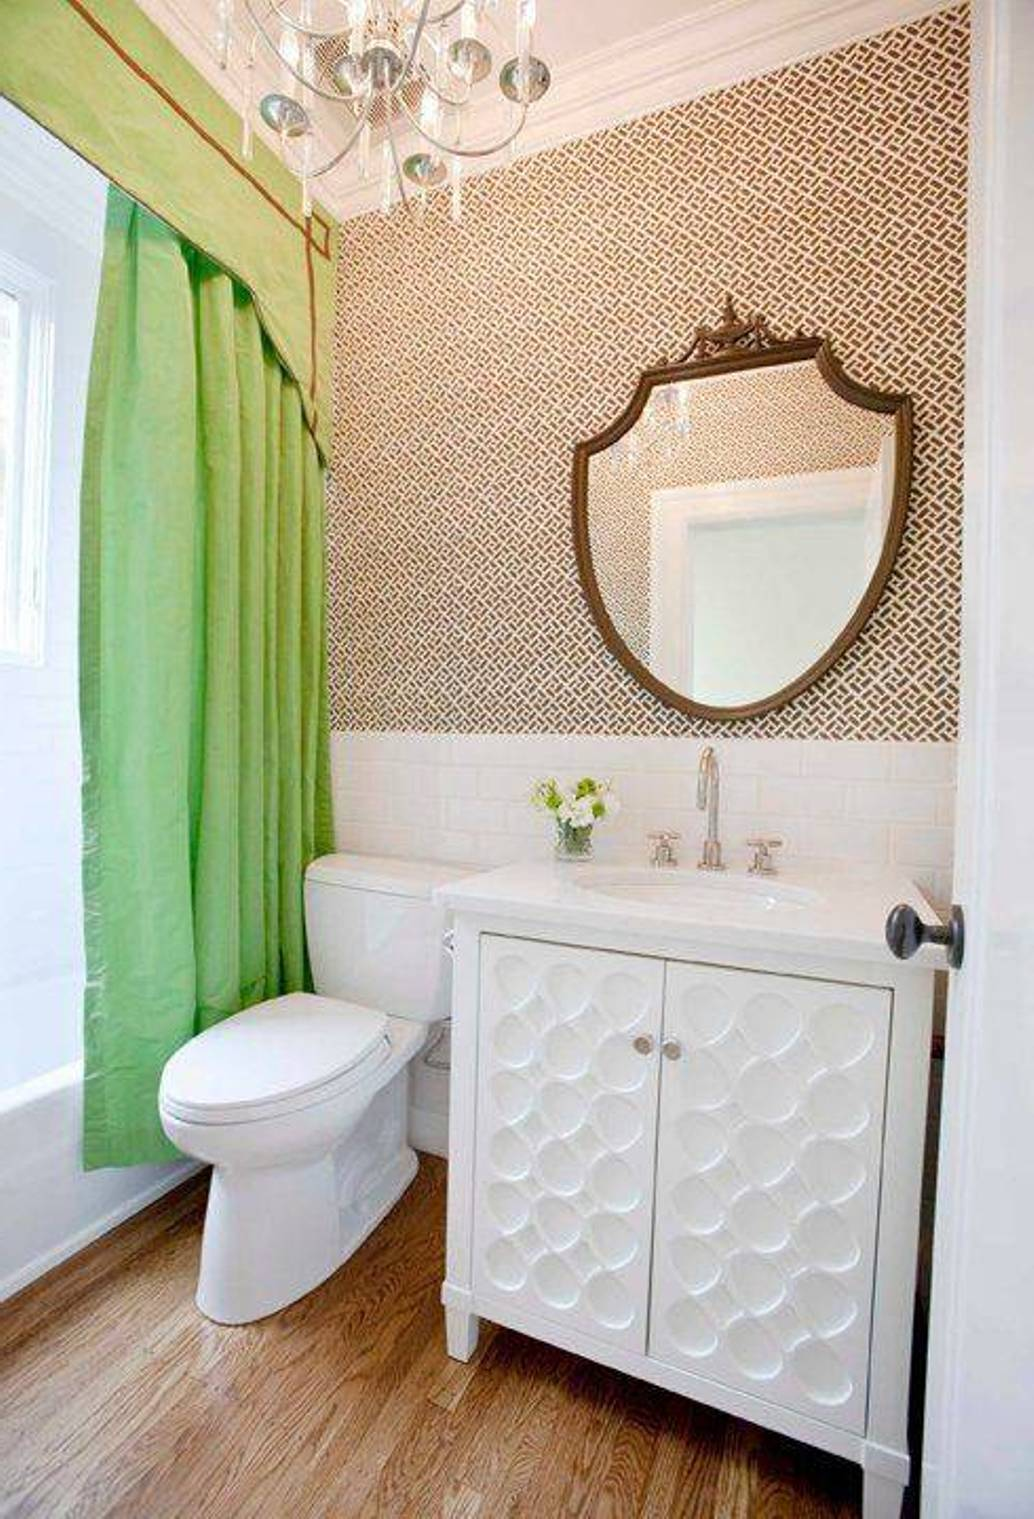 style for small living room interior design apartment eclectic bathroom designs with wallpaper